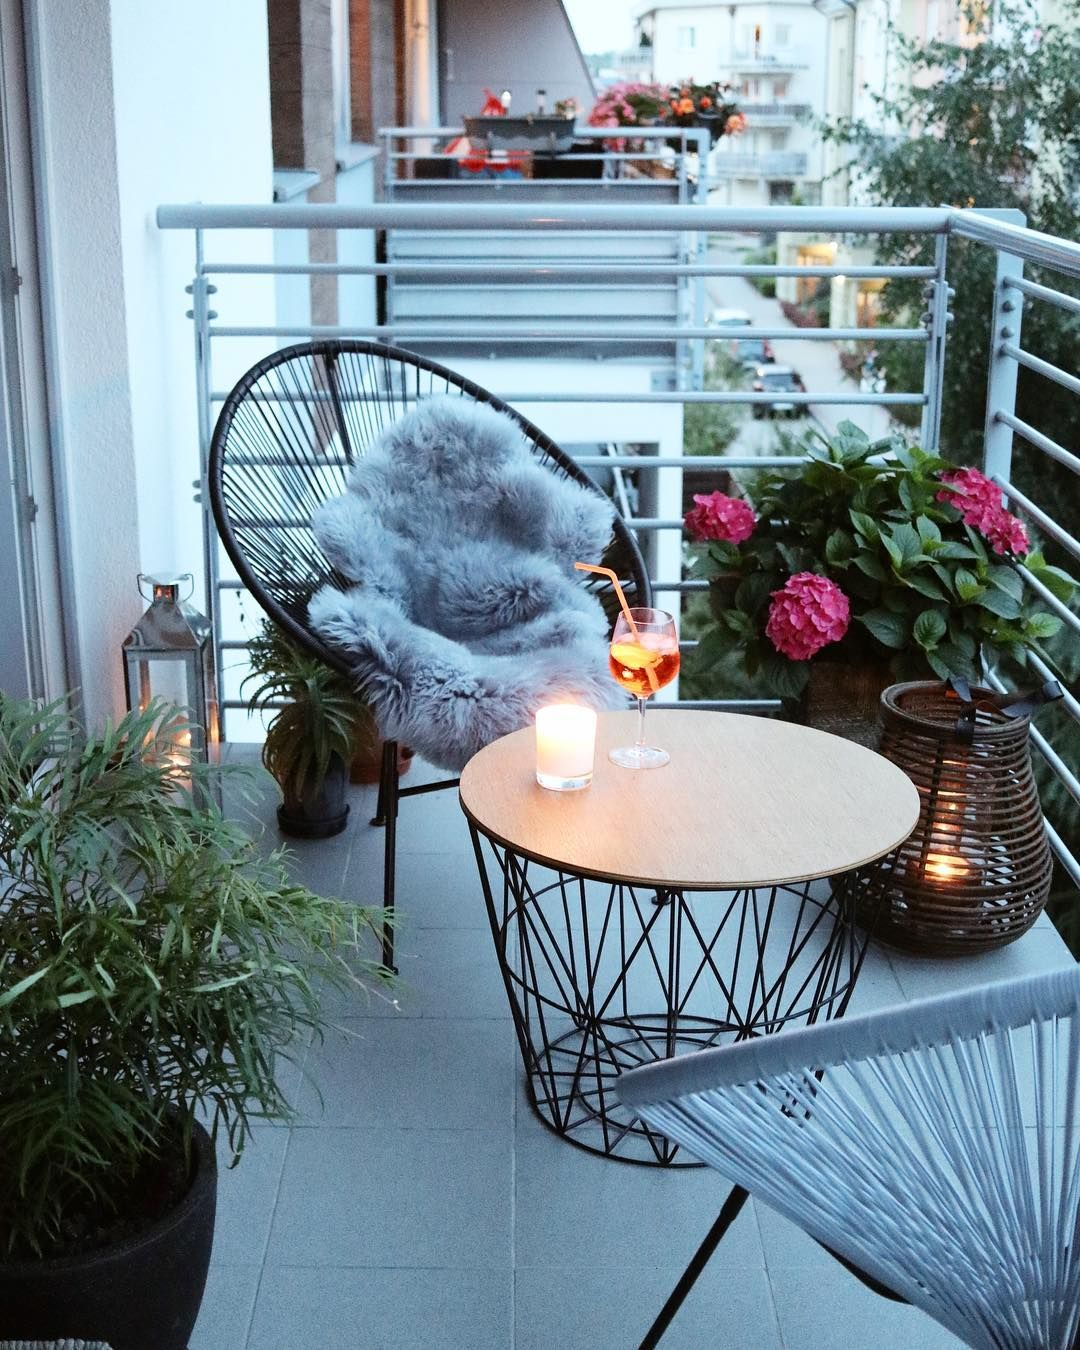 Acapulco Chair Ideas | The Best Decorated Small Outdoor Balconies on Pinterest | Small Patio Decor Ideas | Boho Apartment Patio Inspiration | Outdoor Furniture Inspiration